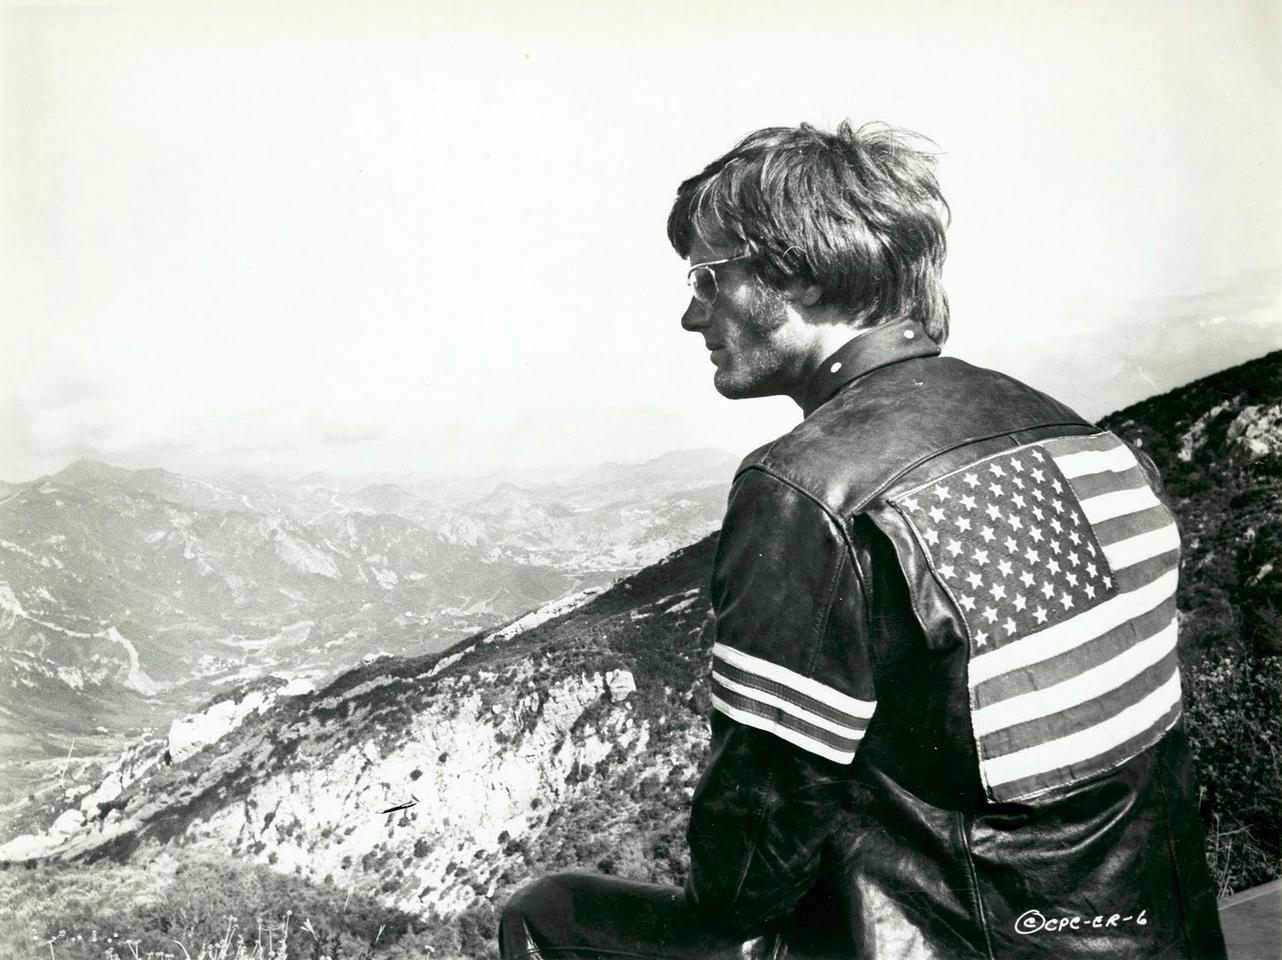 Peter Fonda as Wyatt from the movie Easy Rider. The cred this movie has at auction is astonishing - in 2007, the American flag patch from the back of Fonda's movie-worn jacket sold at Heritage Auctions for $89,625.